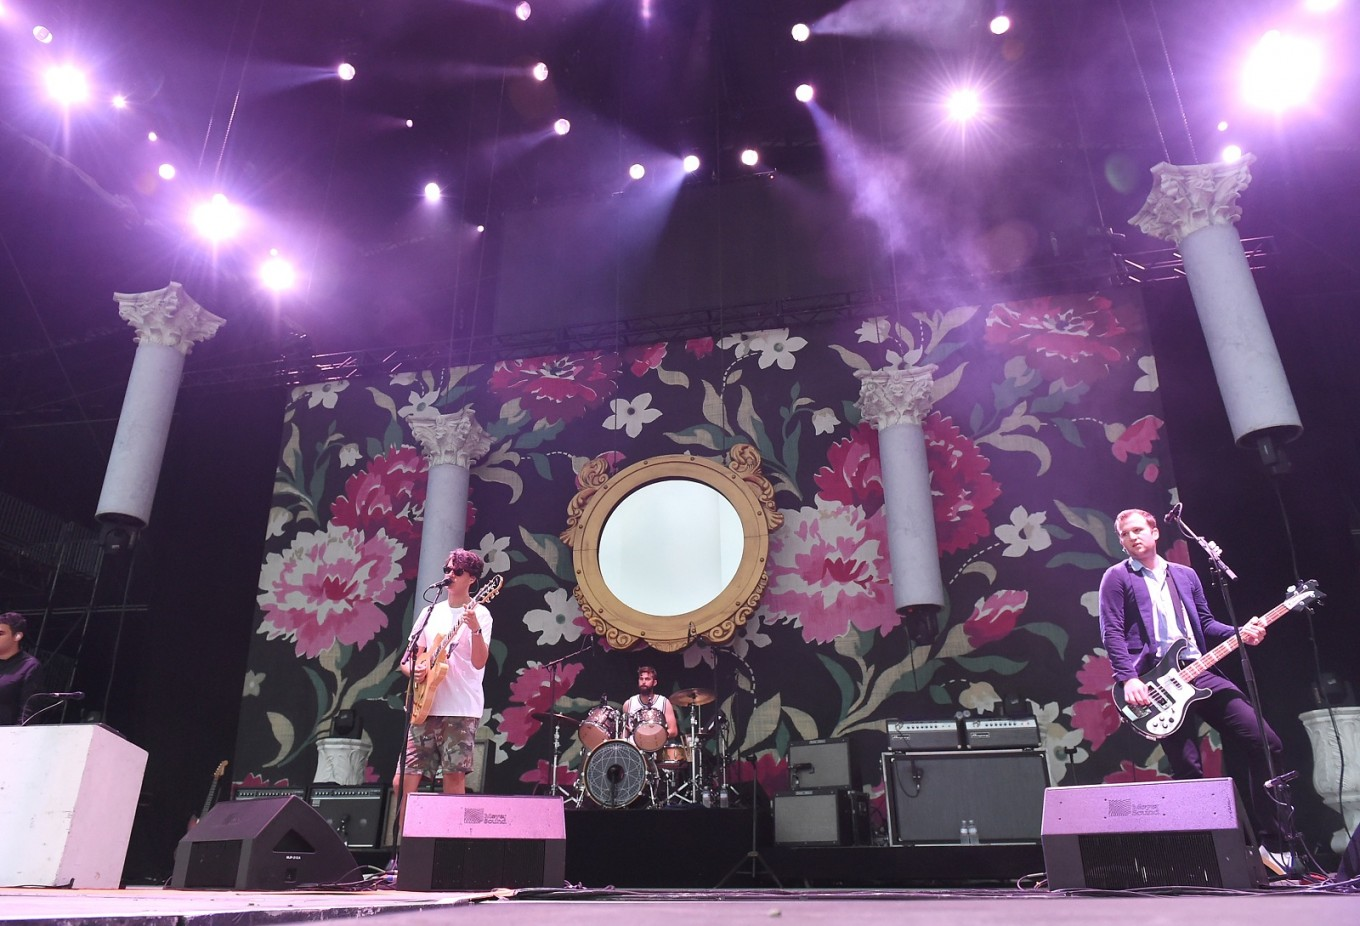 Vampire Weekend has double album coming, new music out next week